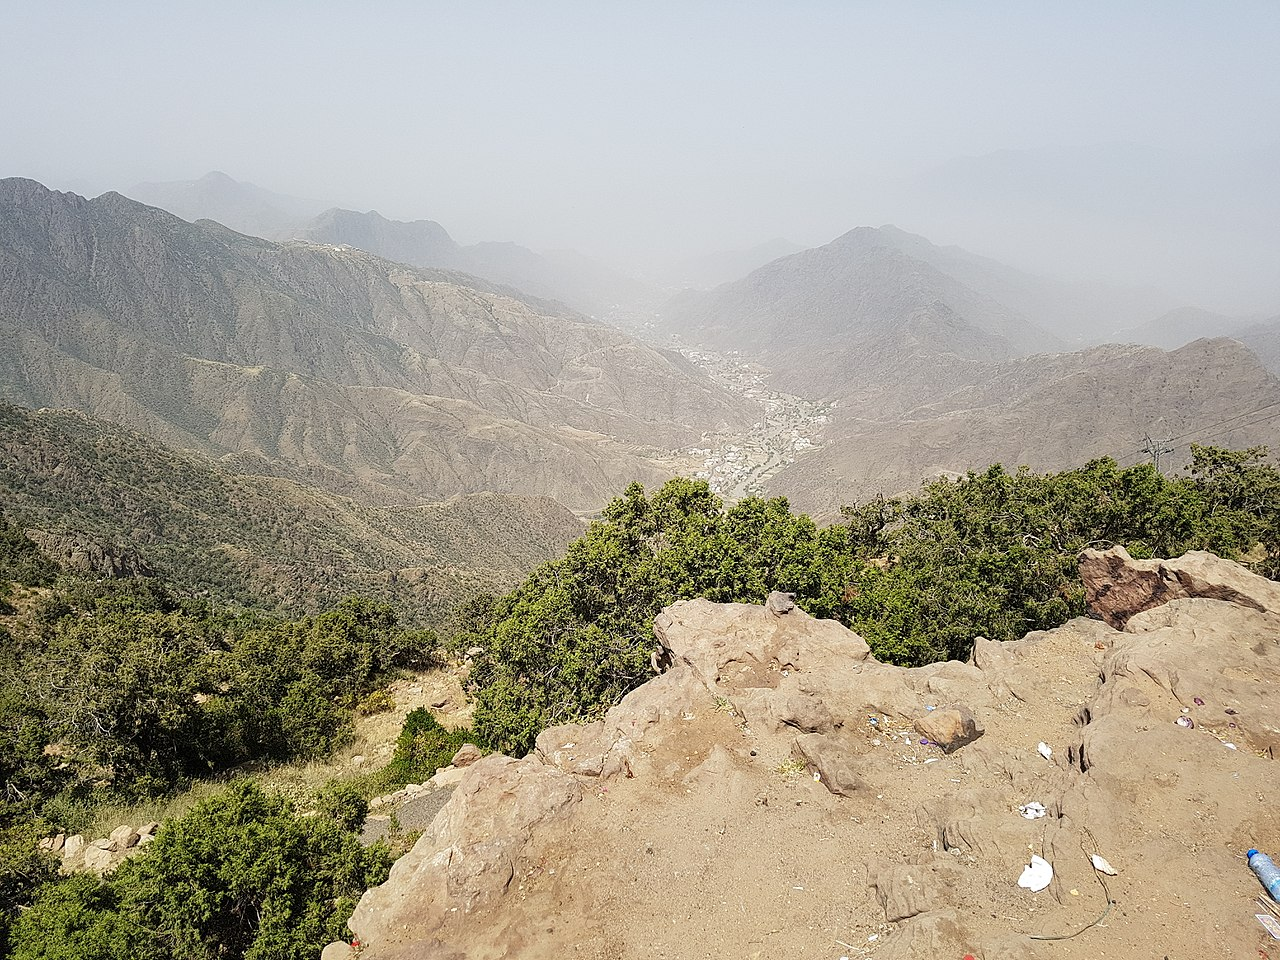 Asir mountain chain - Things to Do in Saudi Arabia